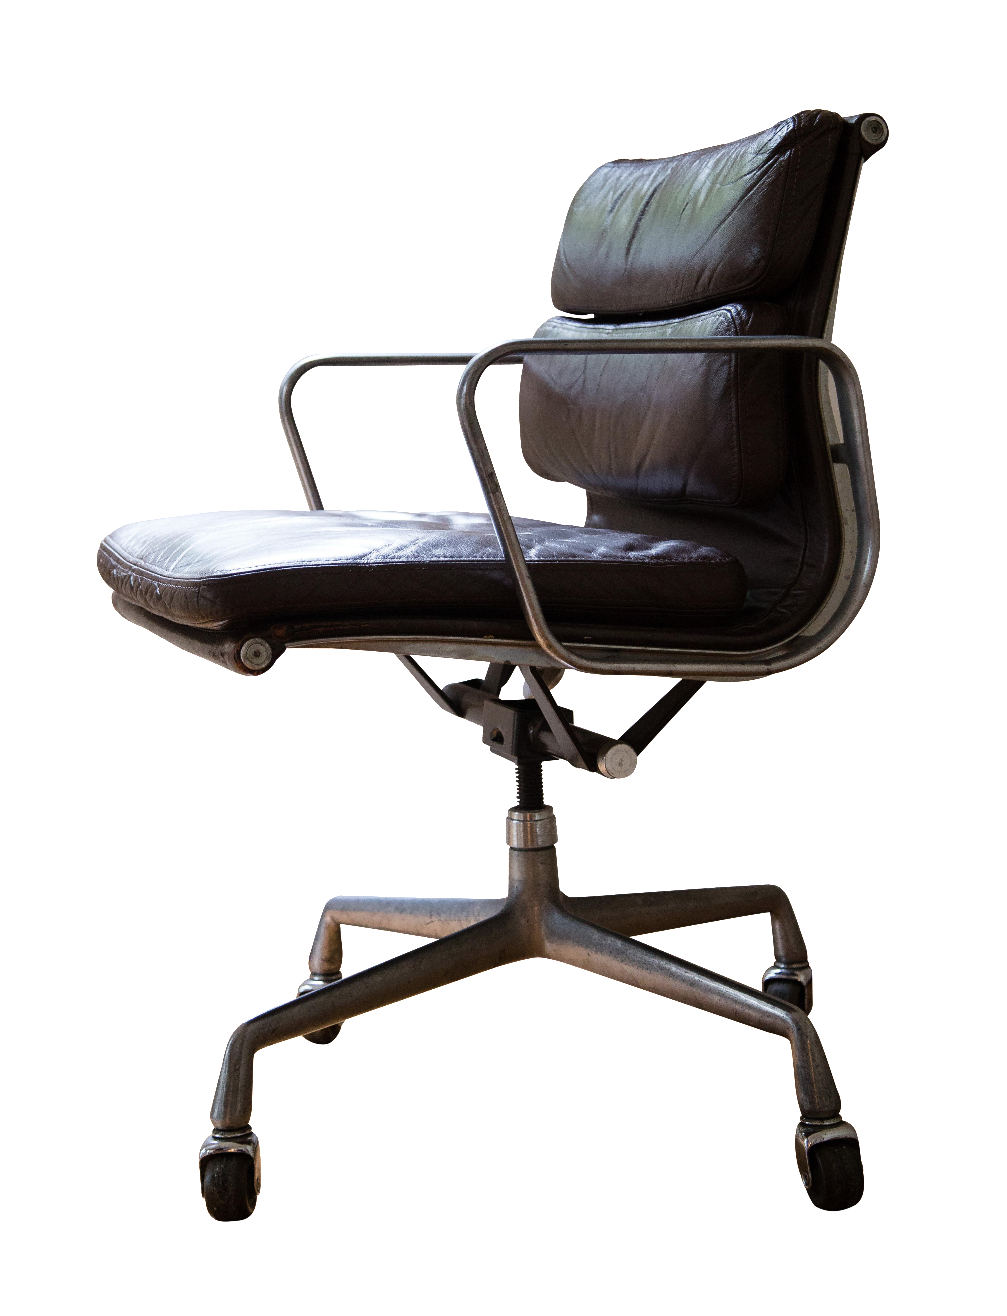 original chair professionally restored by an eames furniture specialist - Furniture Specialist